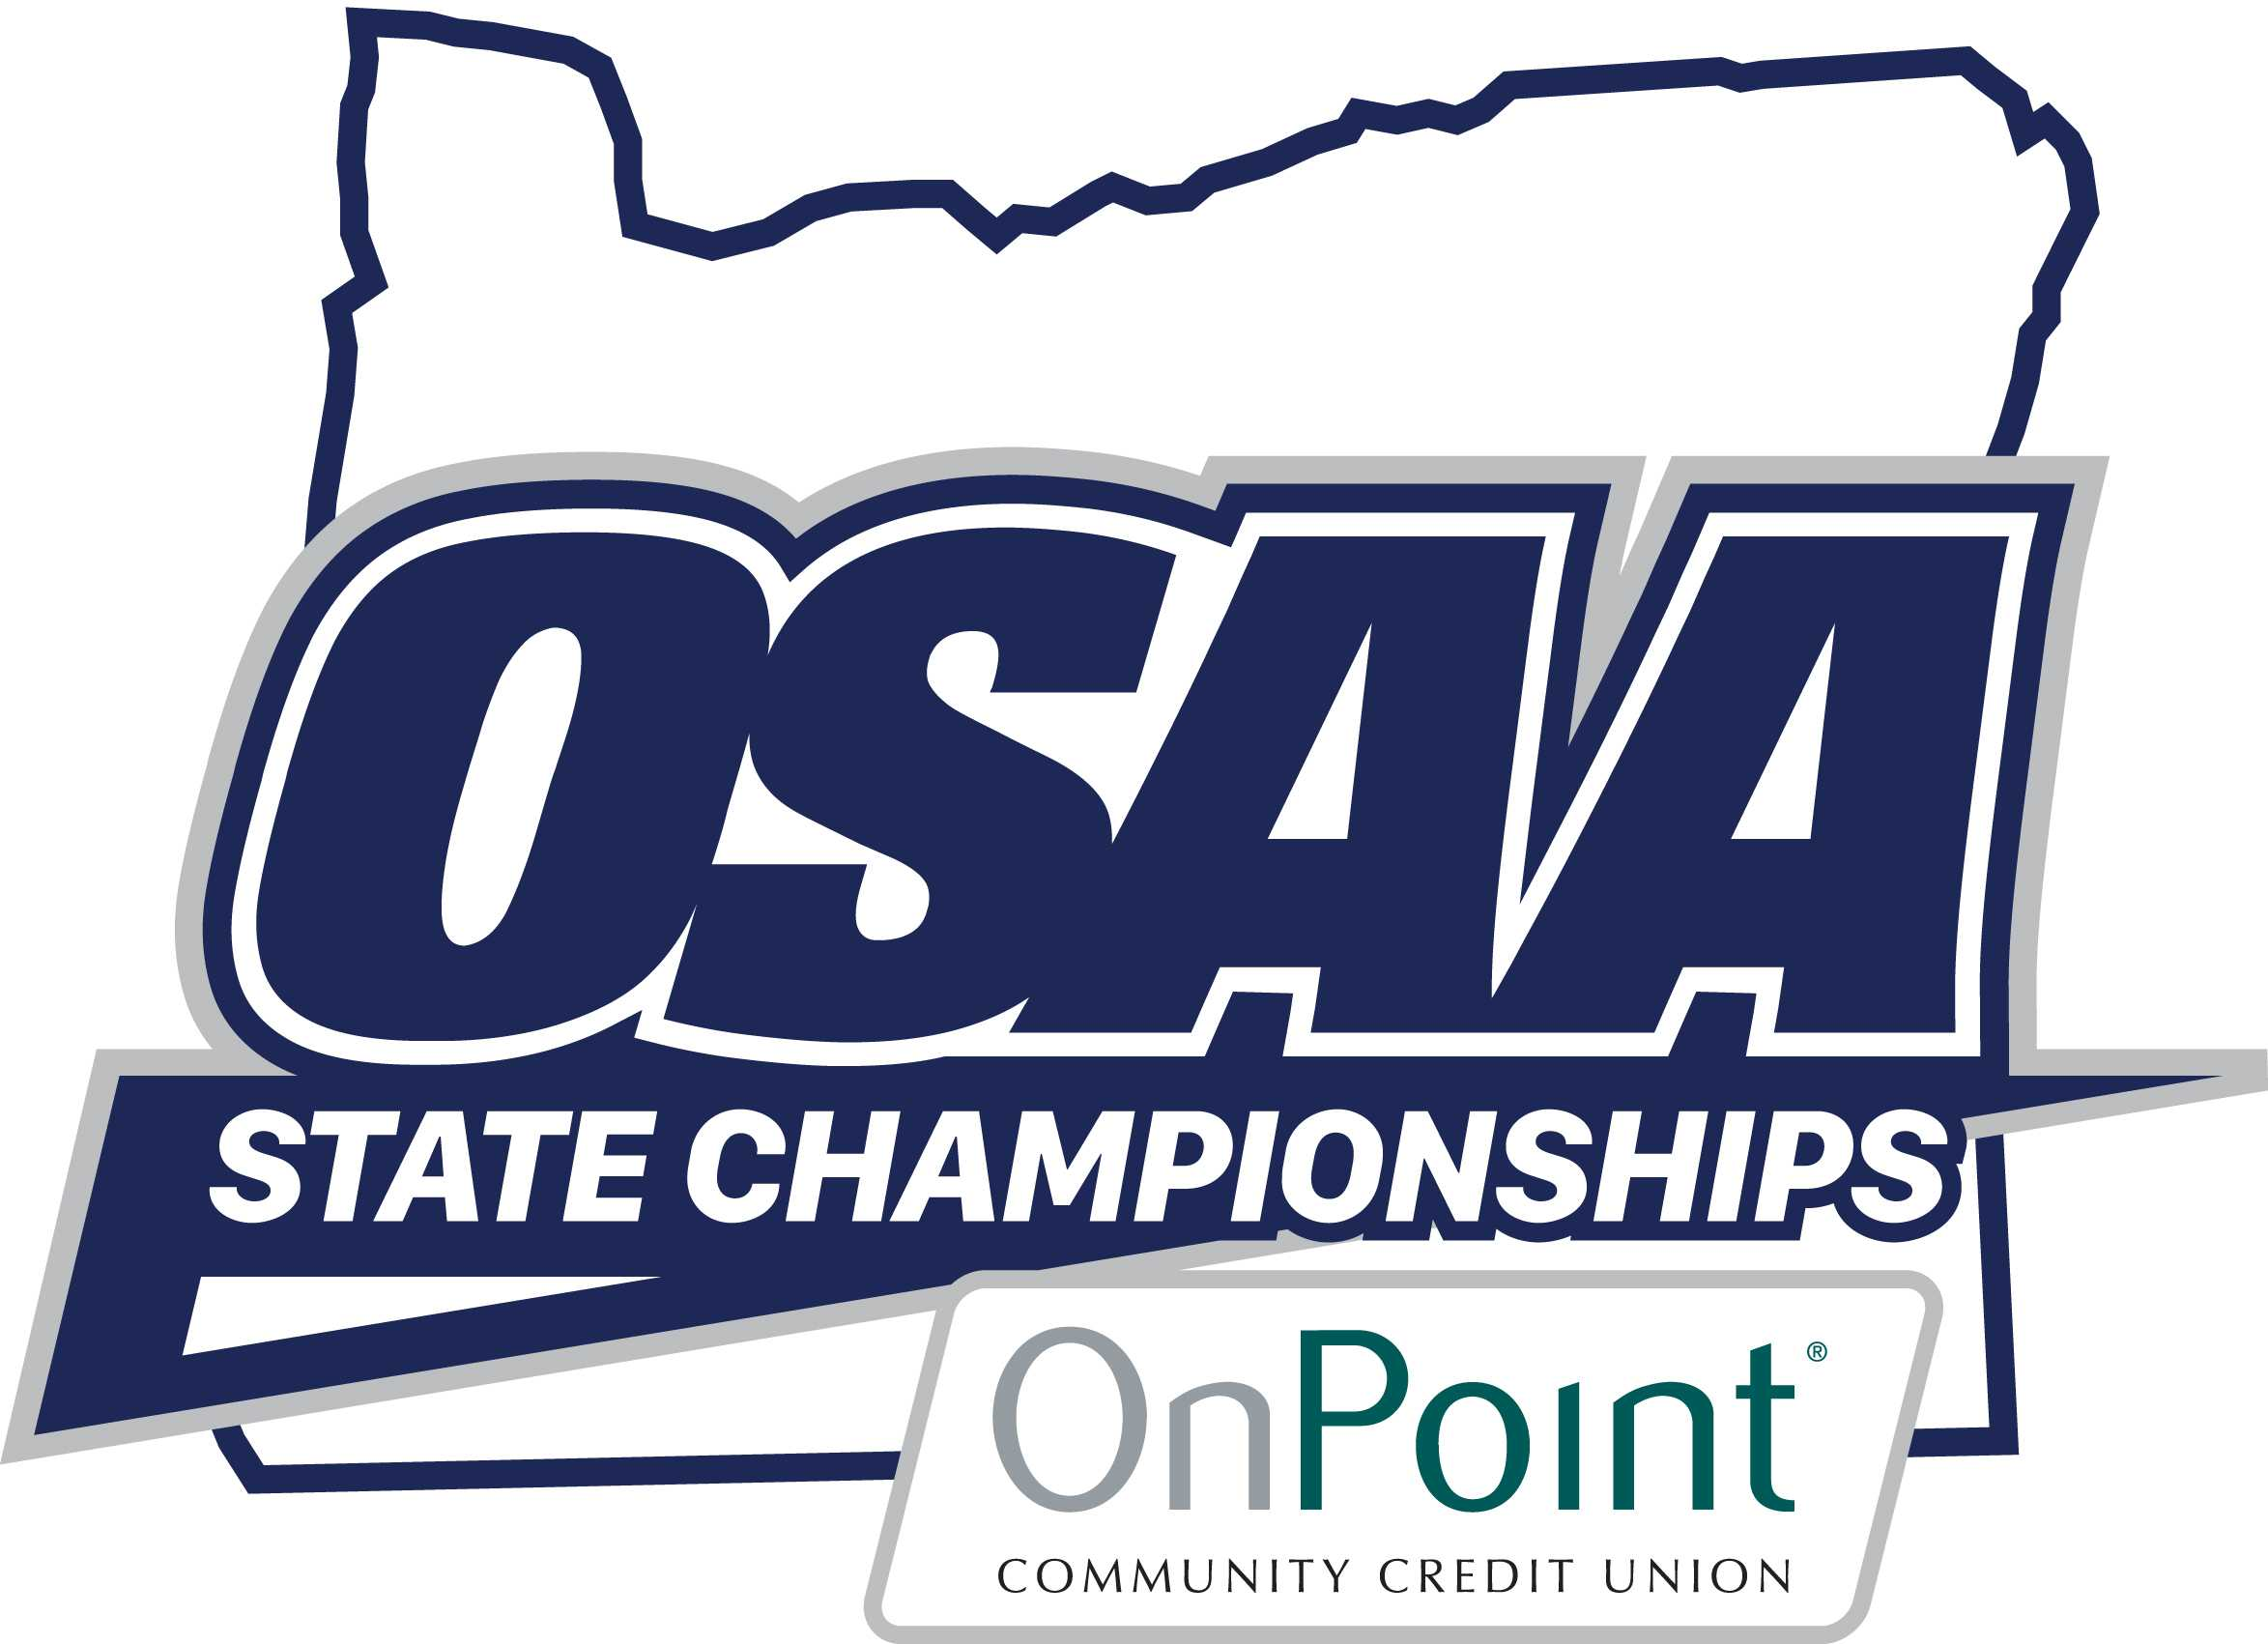 This new logo will be used to brand OSAA State Championships and the OSAA's partnership with OnPoint Community Credit Union.